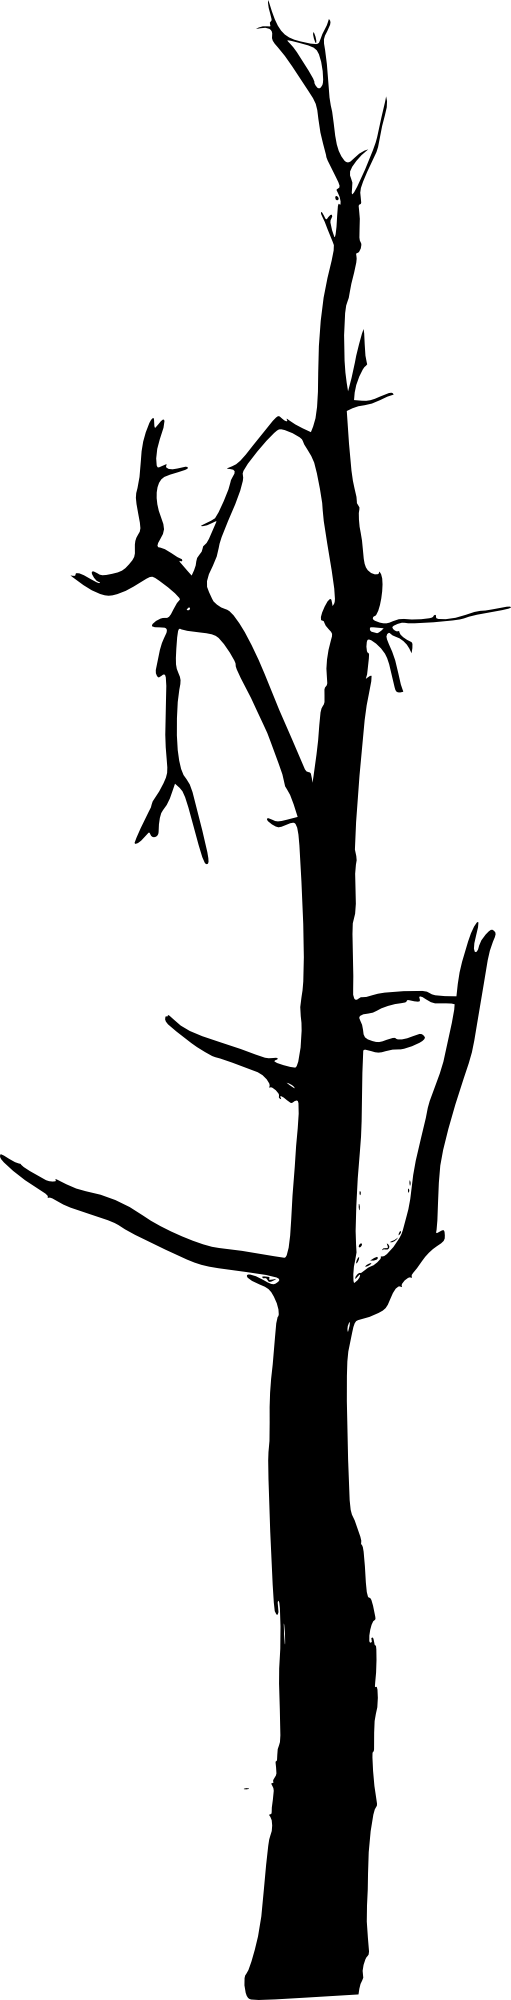 Clipart bare tree picture free Bare Tree Drawing at GetDrawings.com | Free for personal use Bare ... picture free